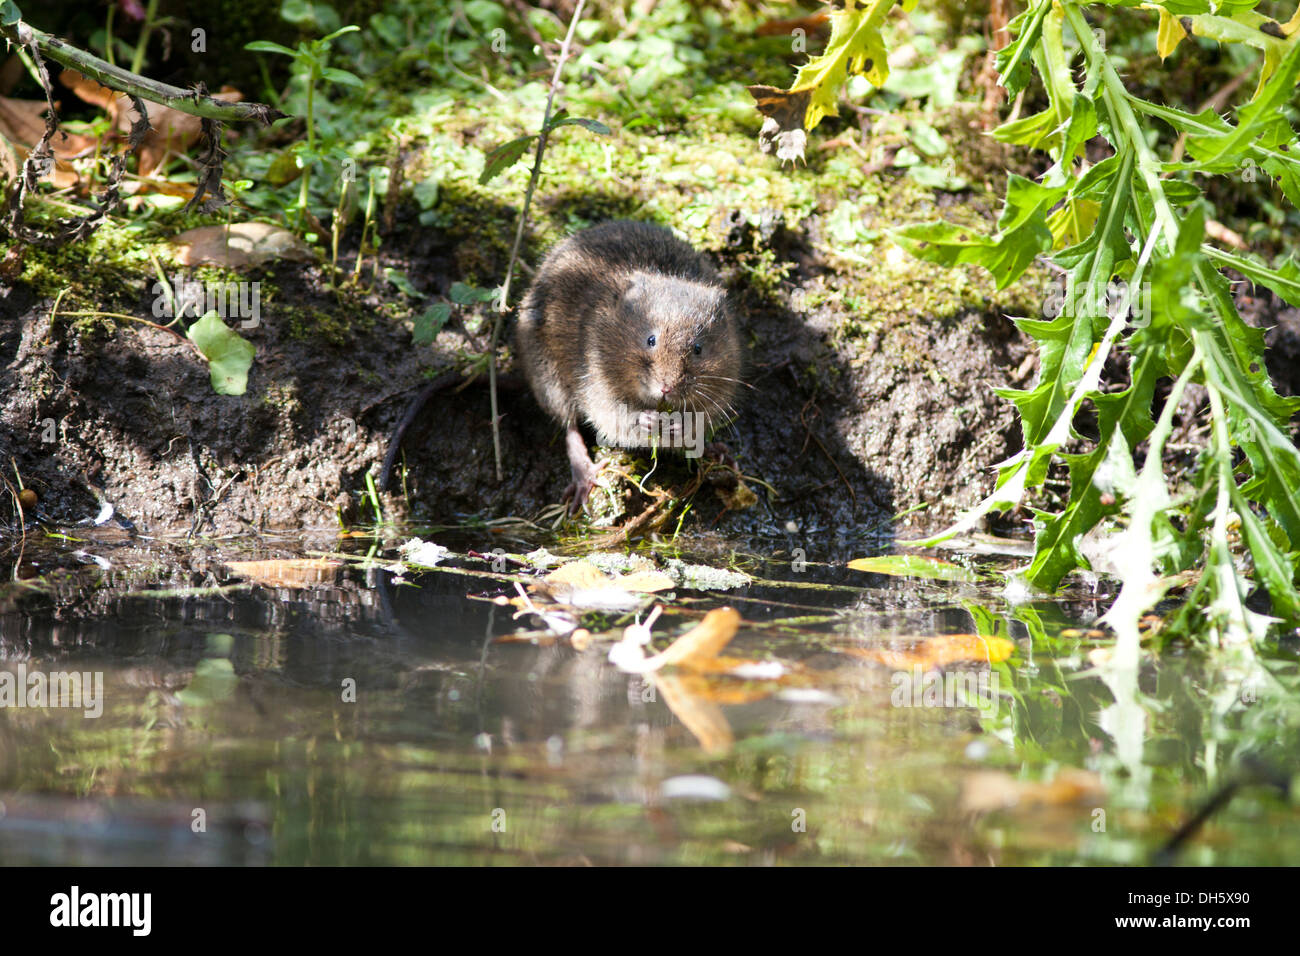 European Water Vole at a riverbank in the UK. September - Stock Image